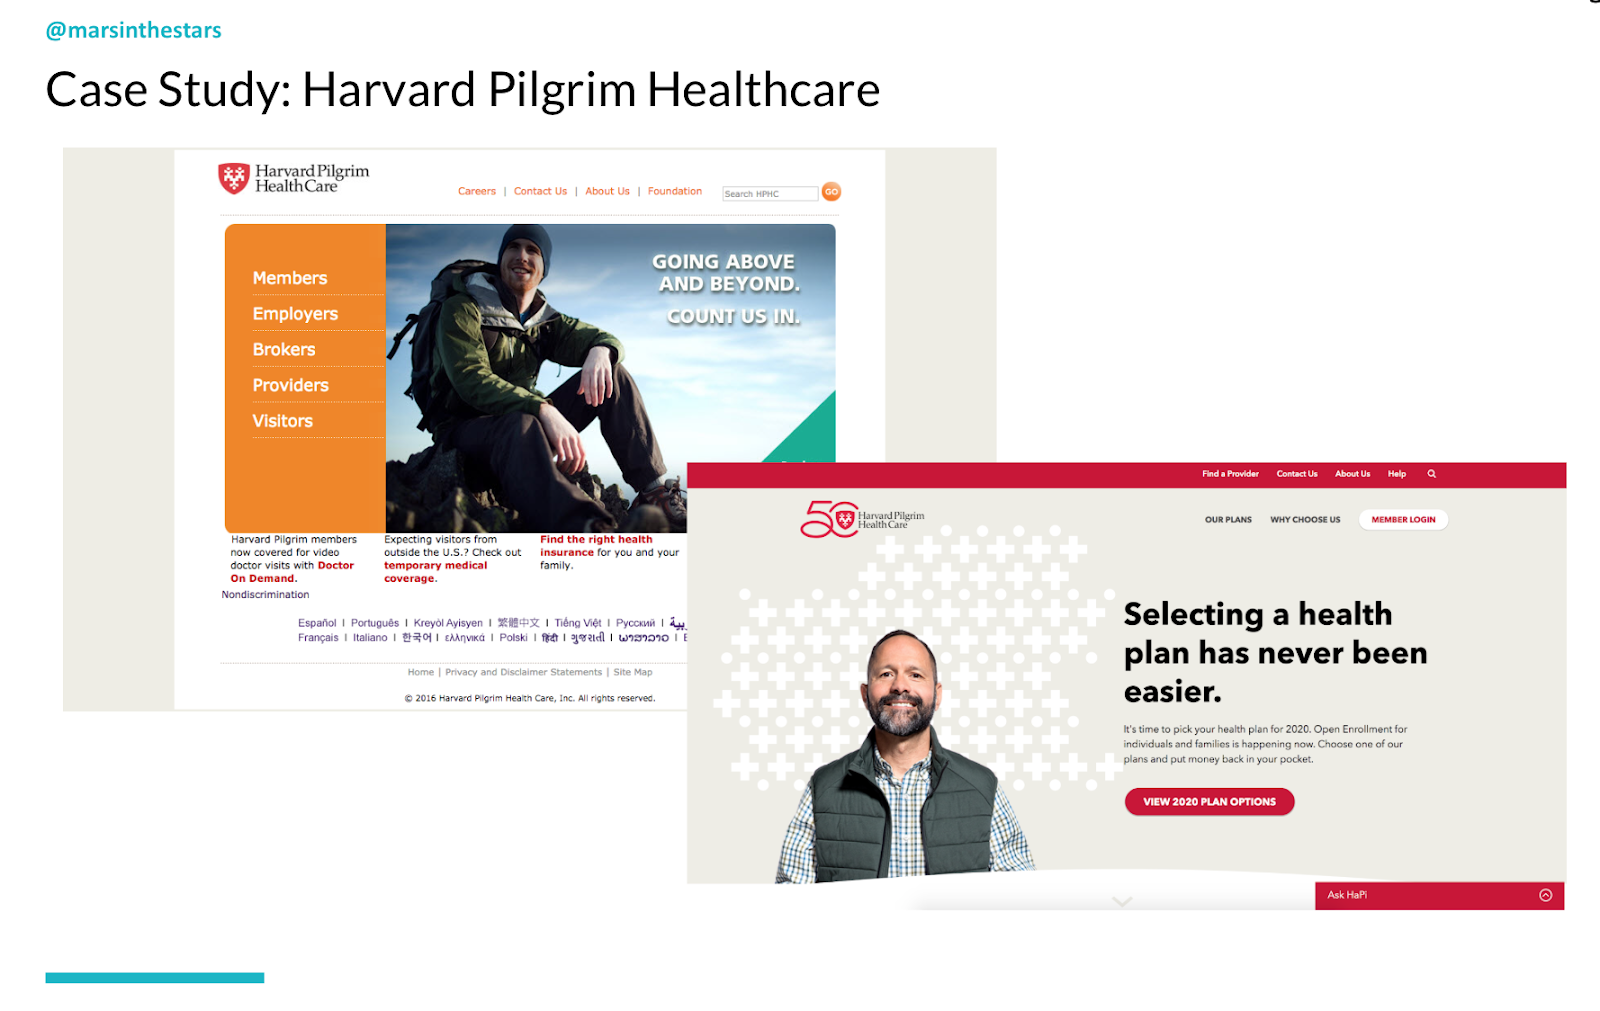 Slide shows the Harvard Pilgrim Healthcare website, which is simple and easy to read